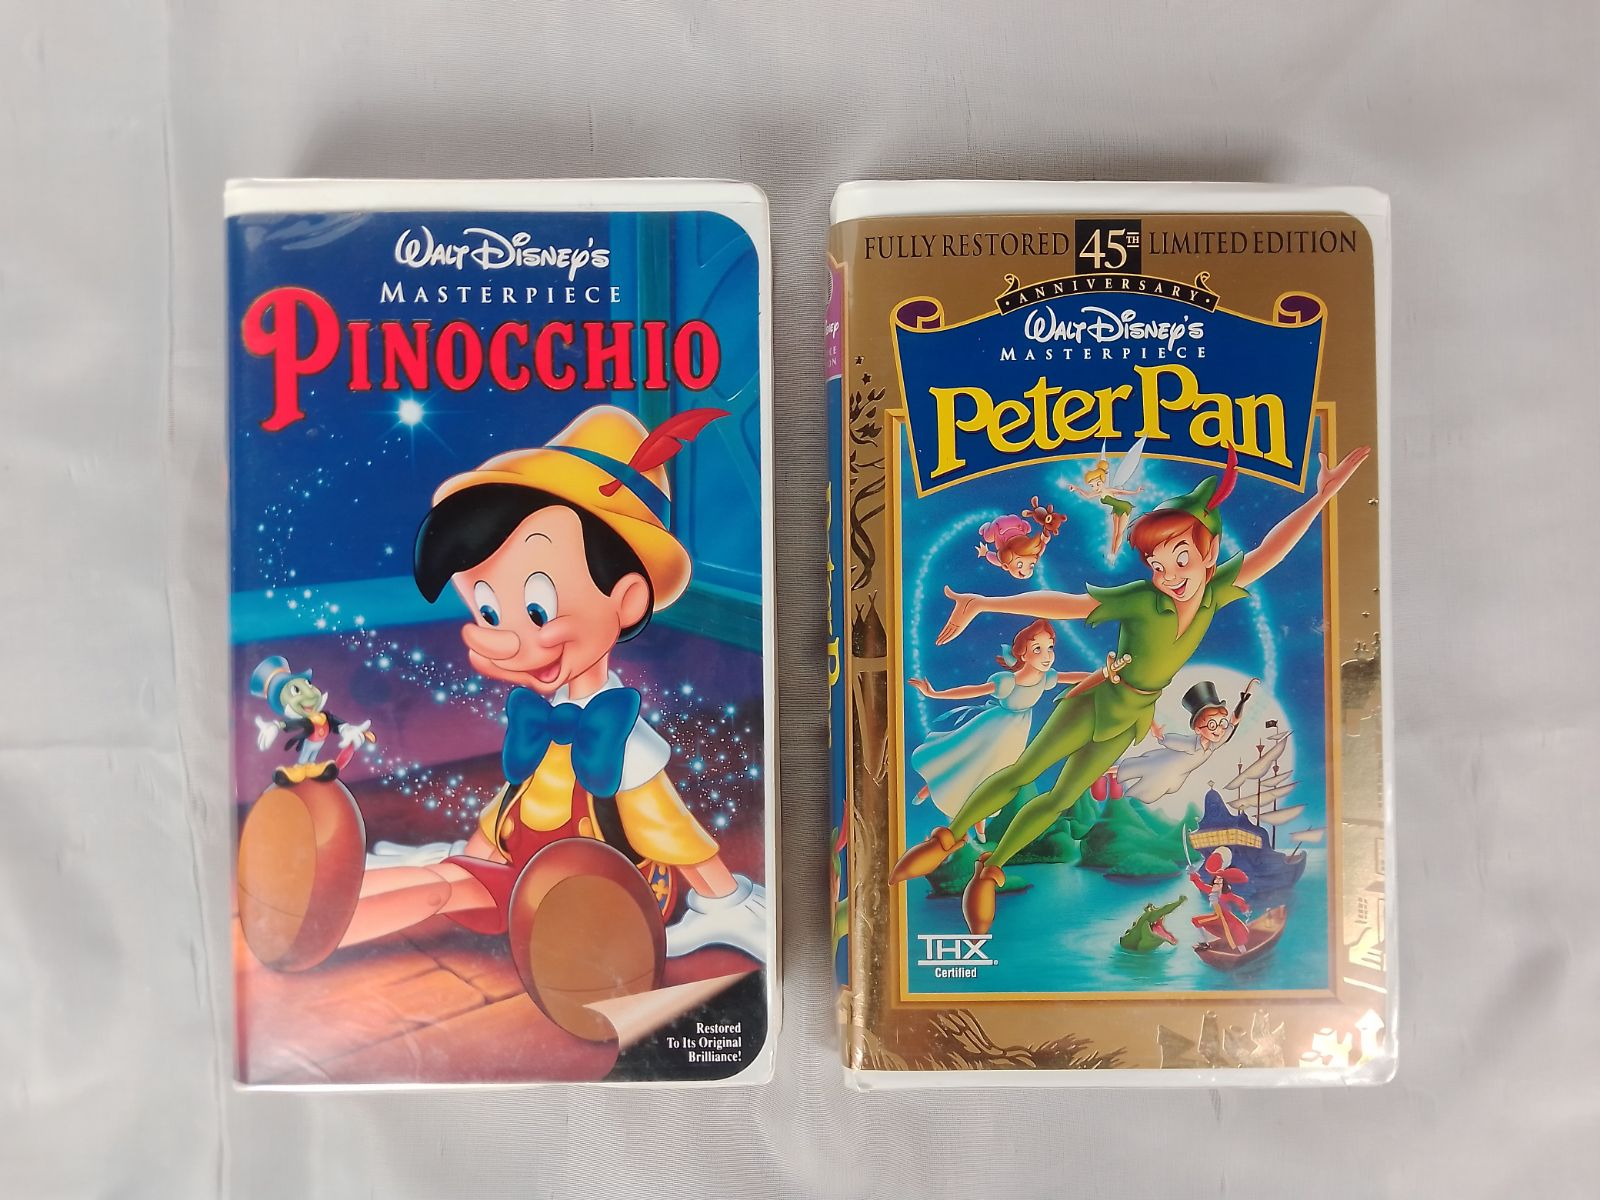 Disney VHS Masterpiece Pinocchio / Peter